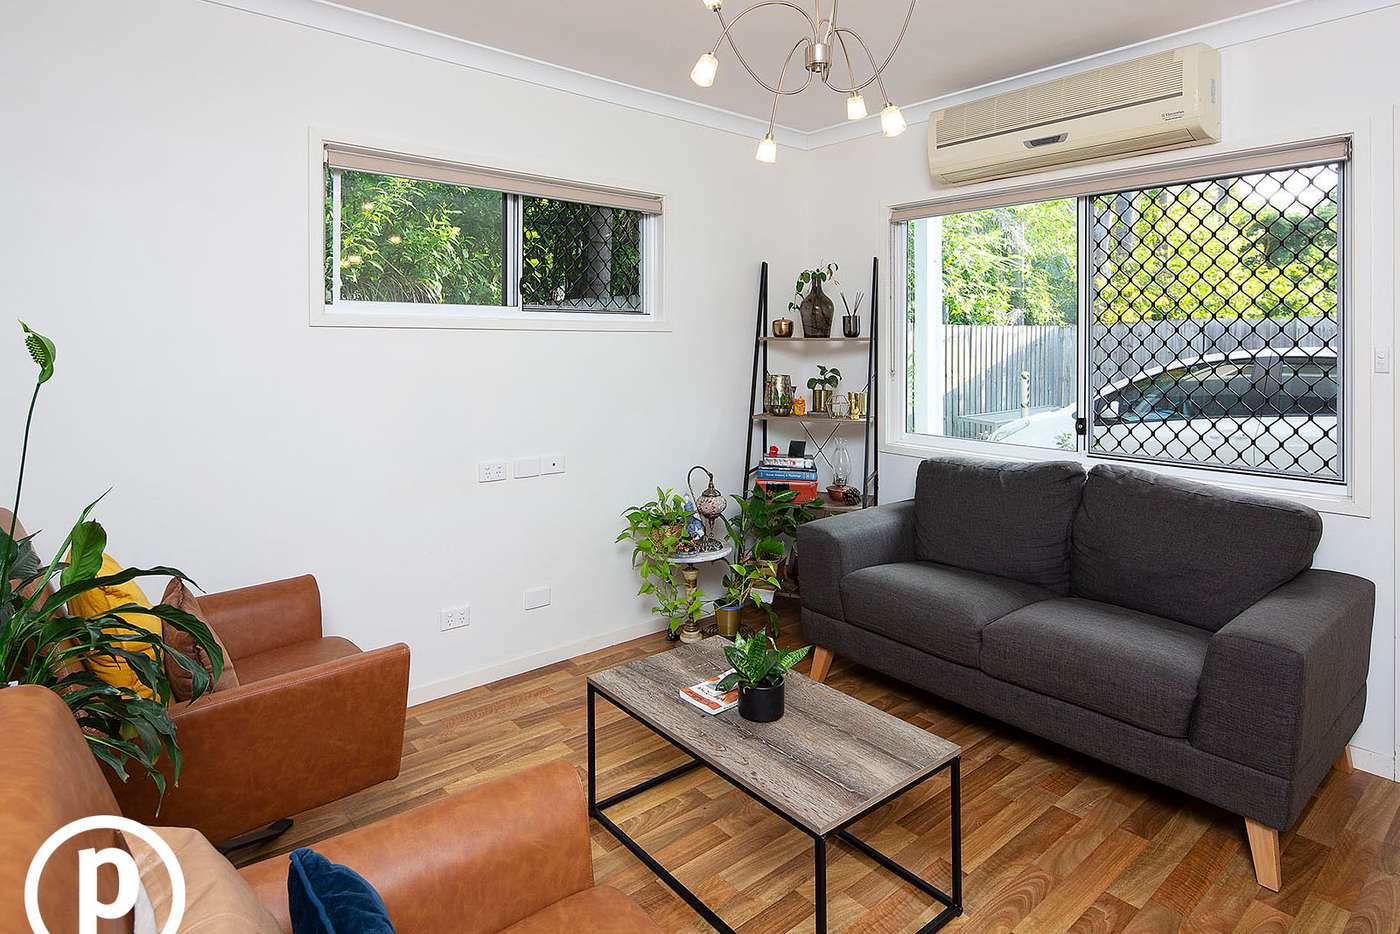 Sixth view of Homely townhouse listing, 6/26 Joyce Street, Burpengary QLD 4505